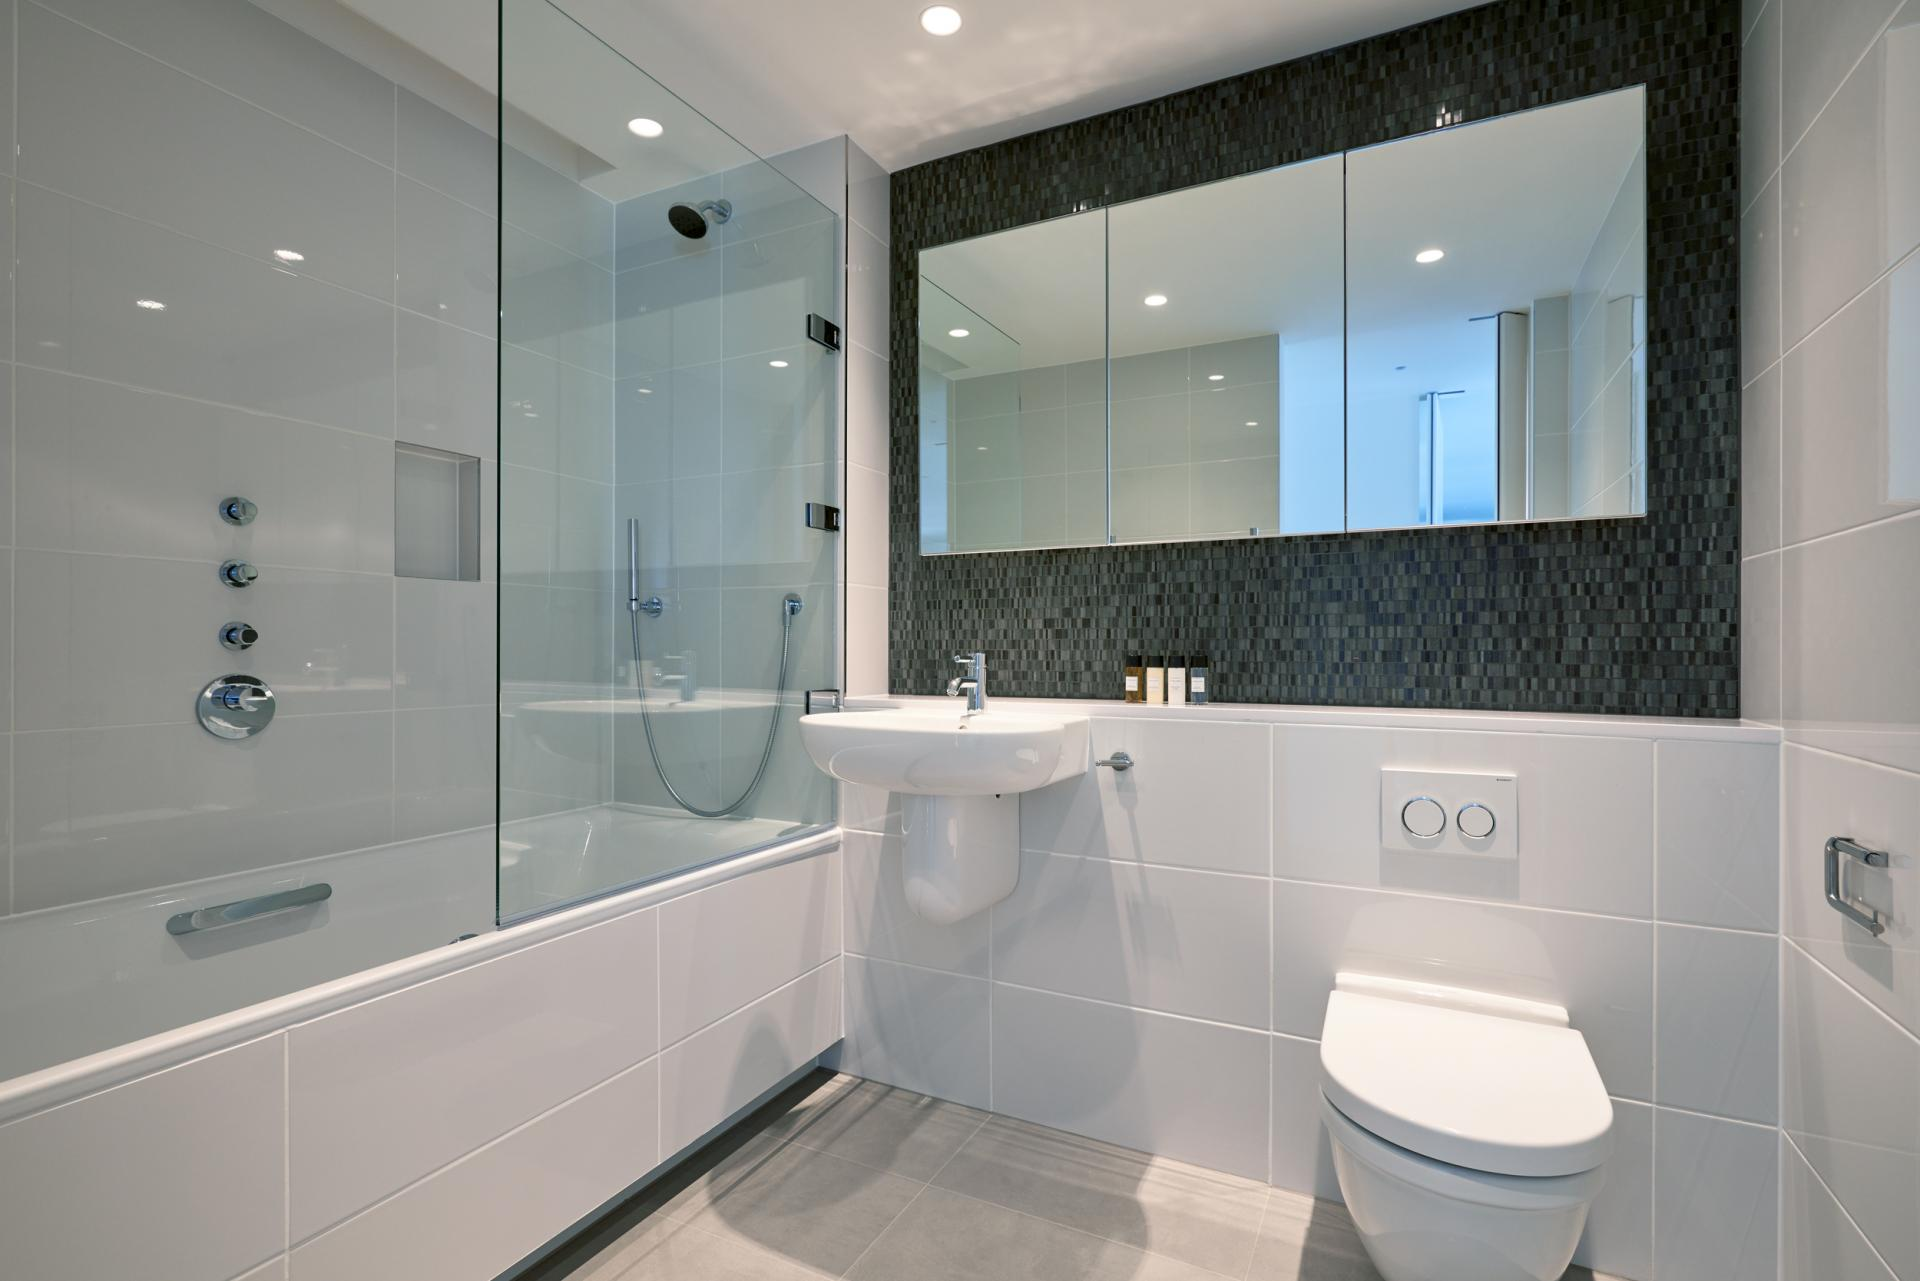 Bathroom at Great Portland Street Apartments, Fitzrovia, London - Citybase Apartments